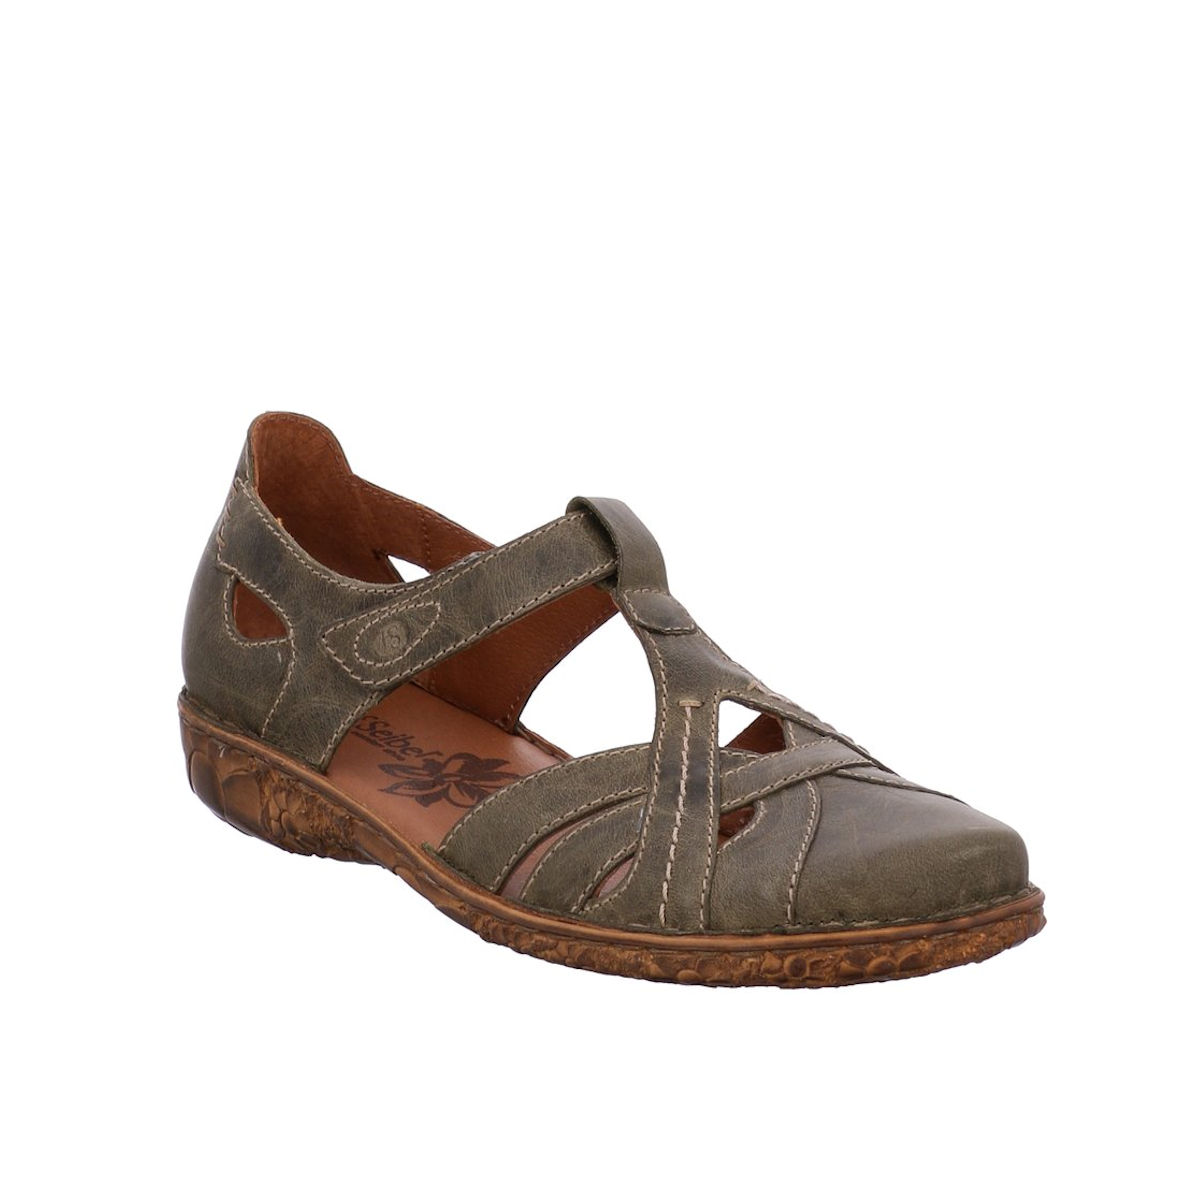 Josef Seibel Rosalie 44 - Womens Olive Closed Toe Sandal